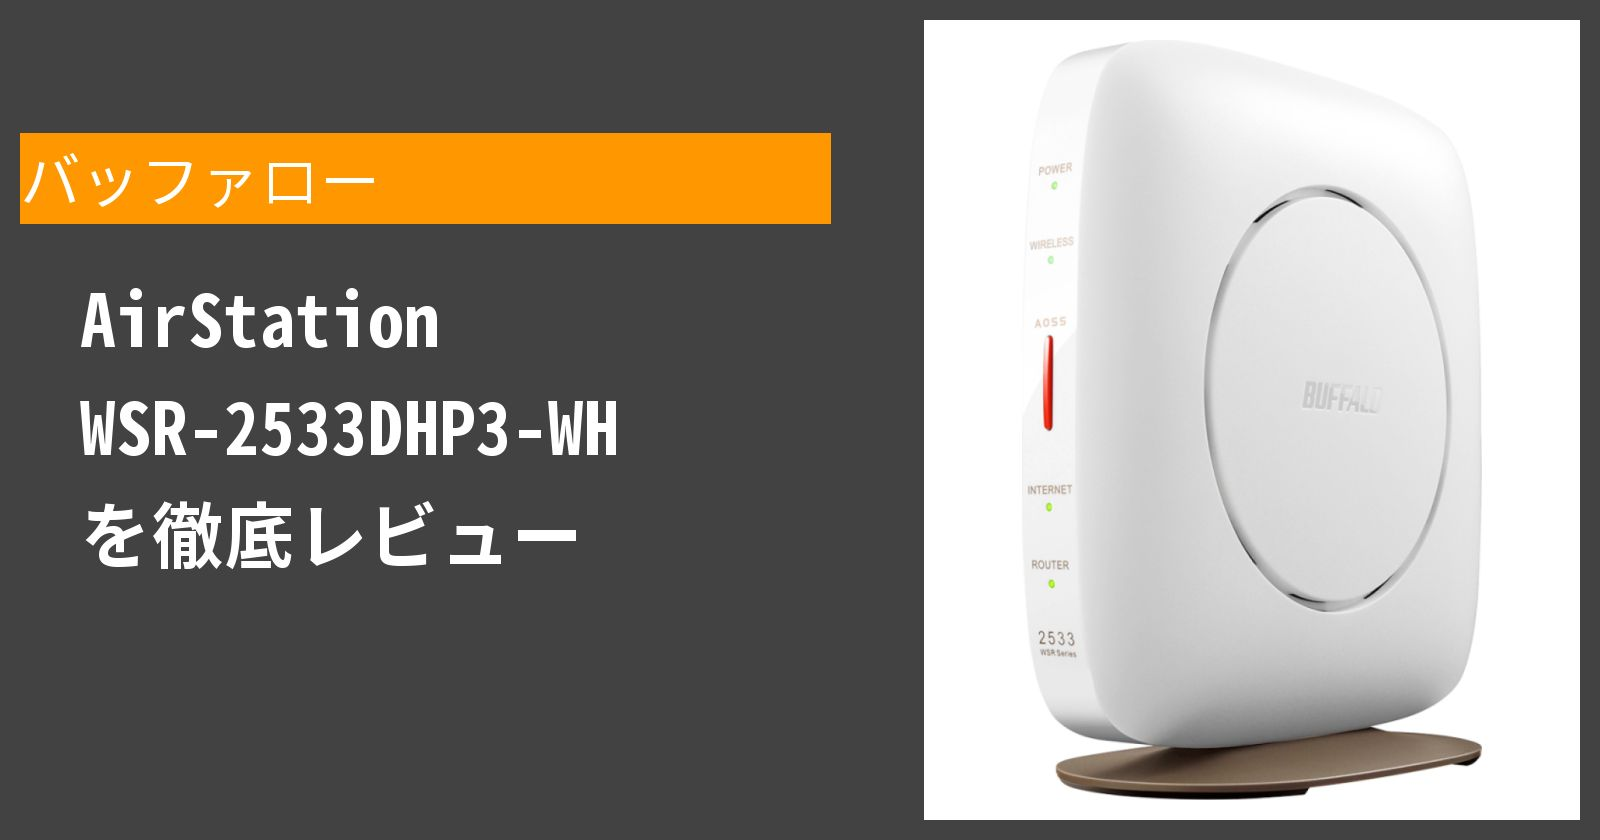 AirStation WSR-2533DHP3-WHを徹底評価